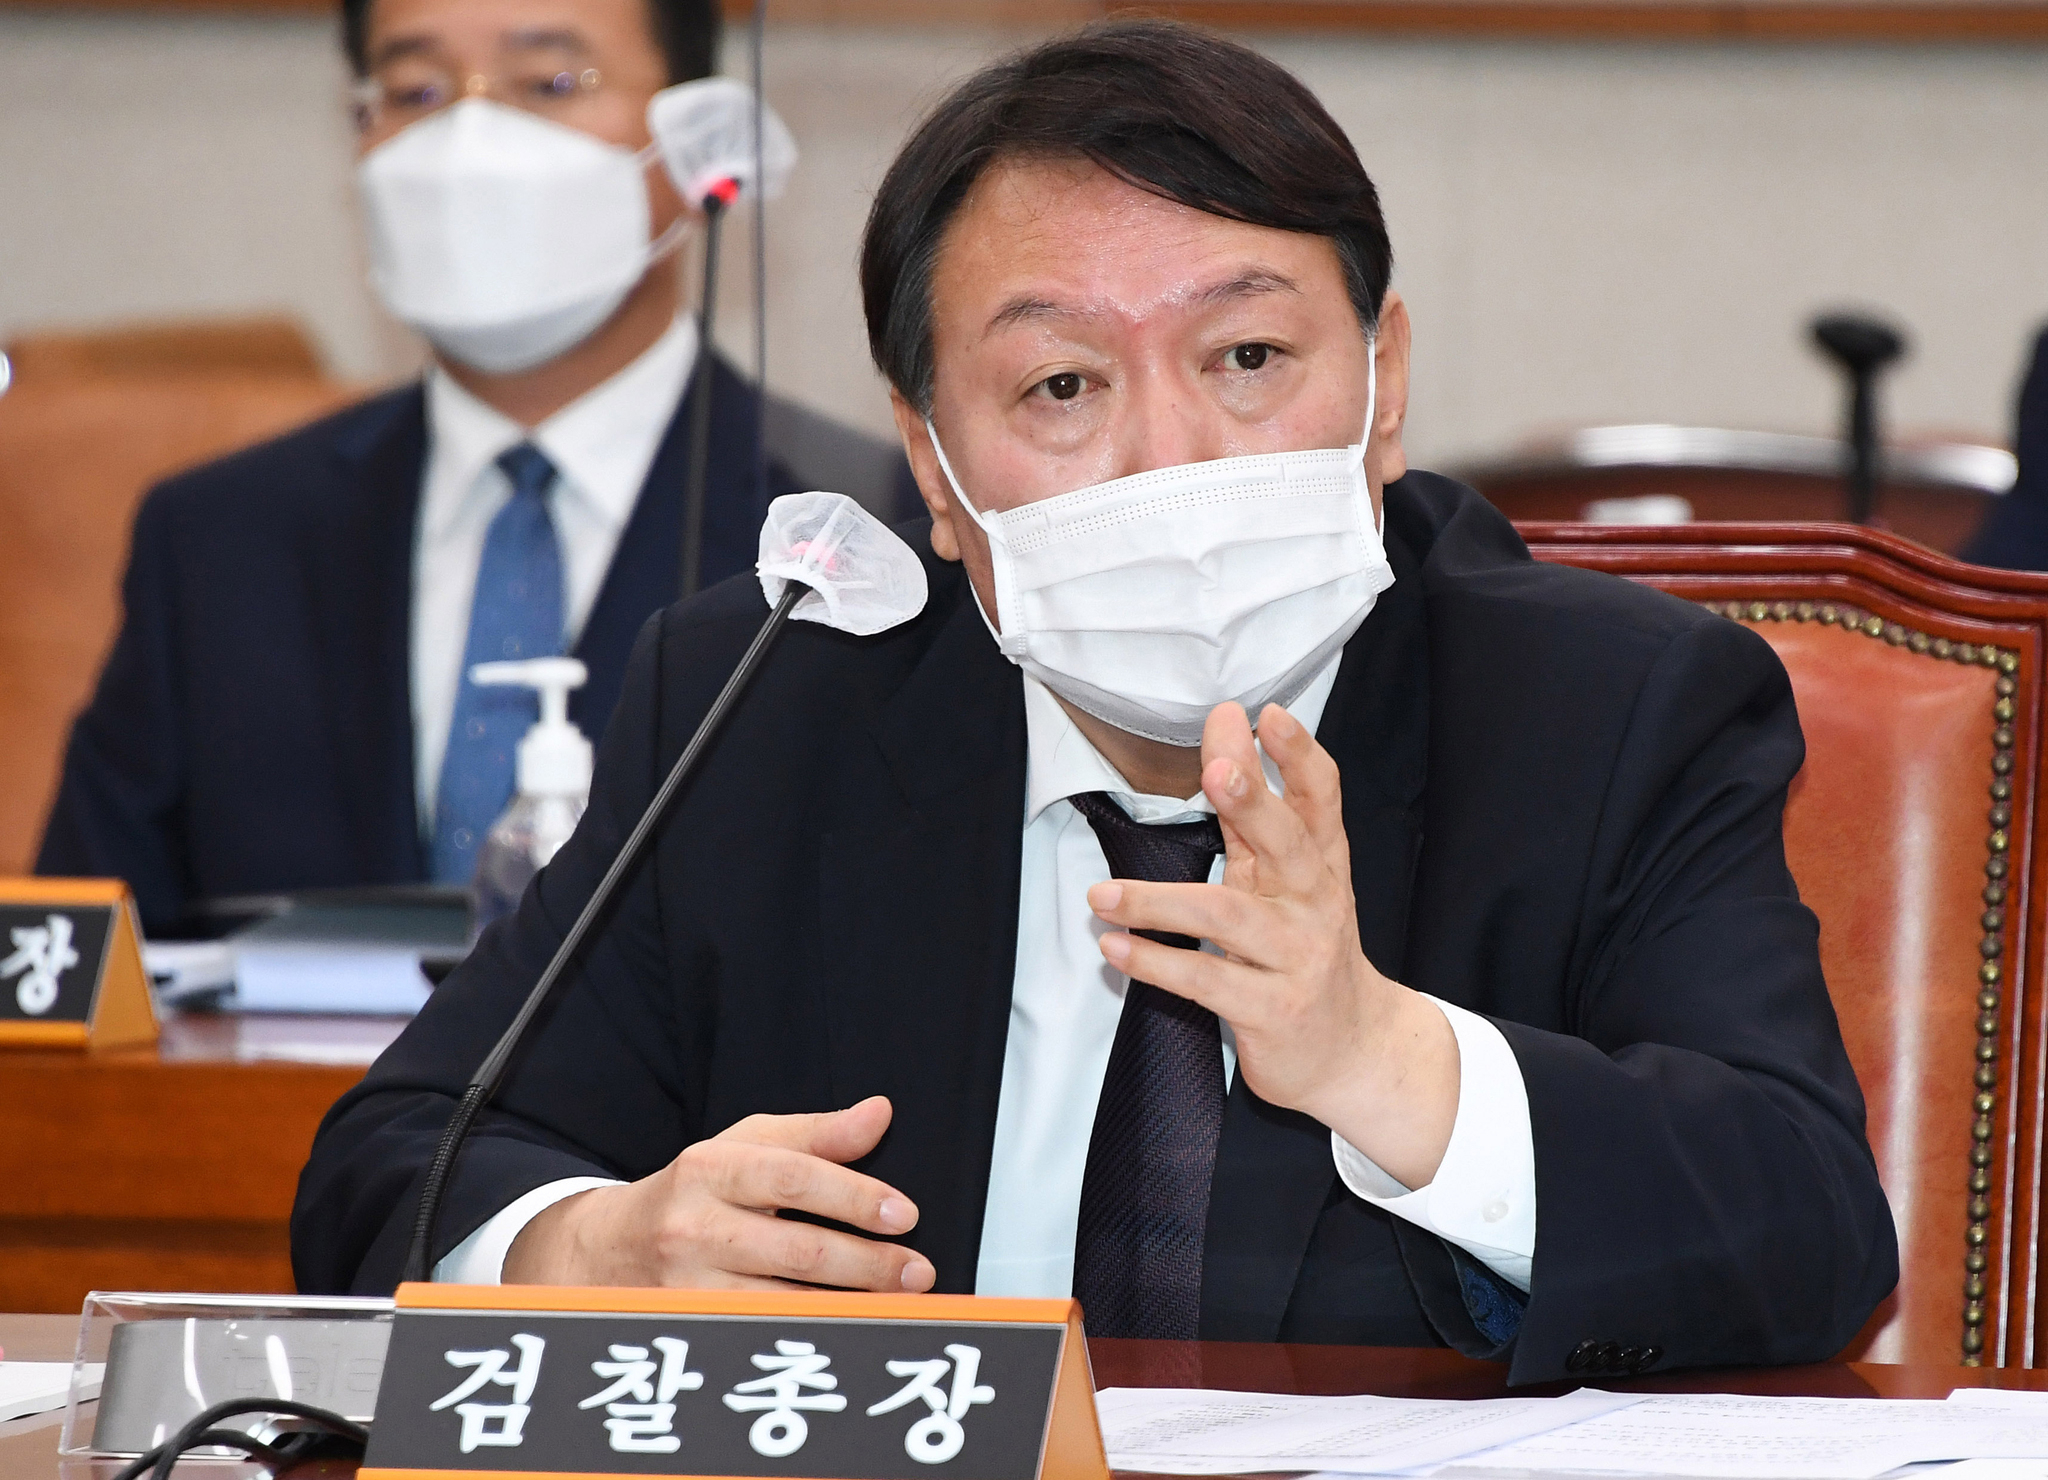 Prosecutor General Yoon Seok-youl answers questions from lawmakers in the National Assembly on Oct. 22. [JOONGANG PHOTO]